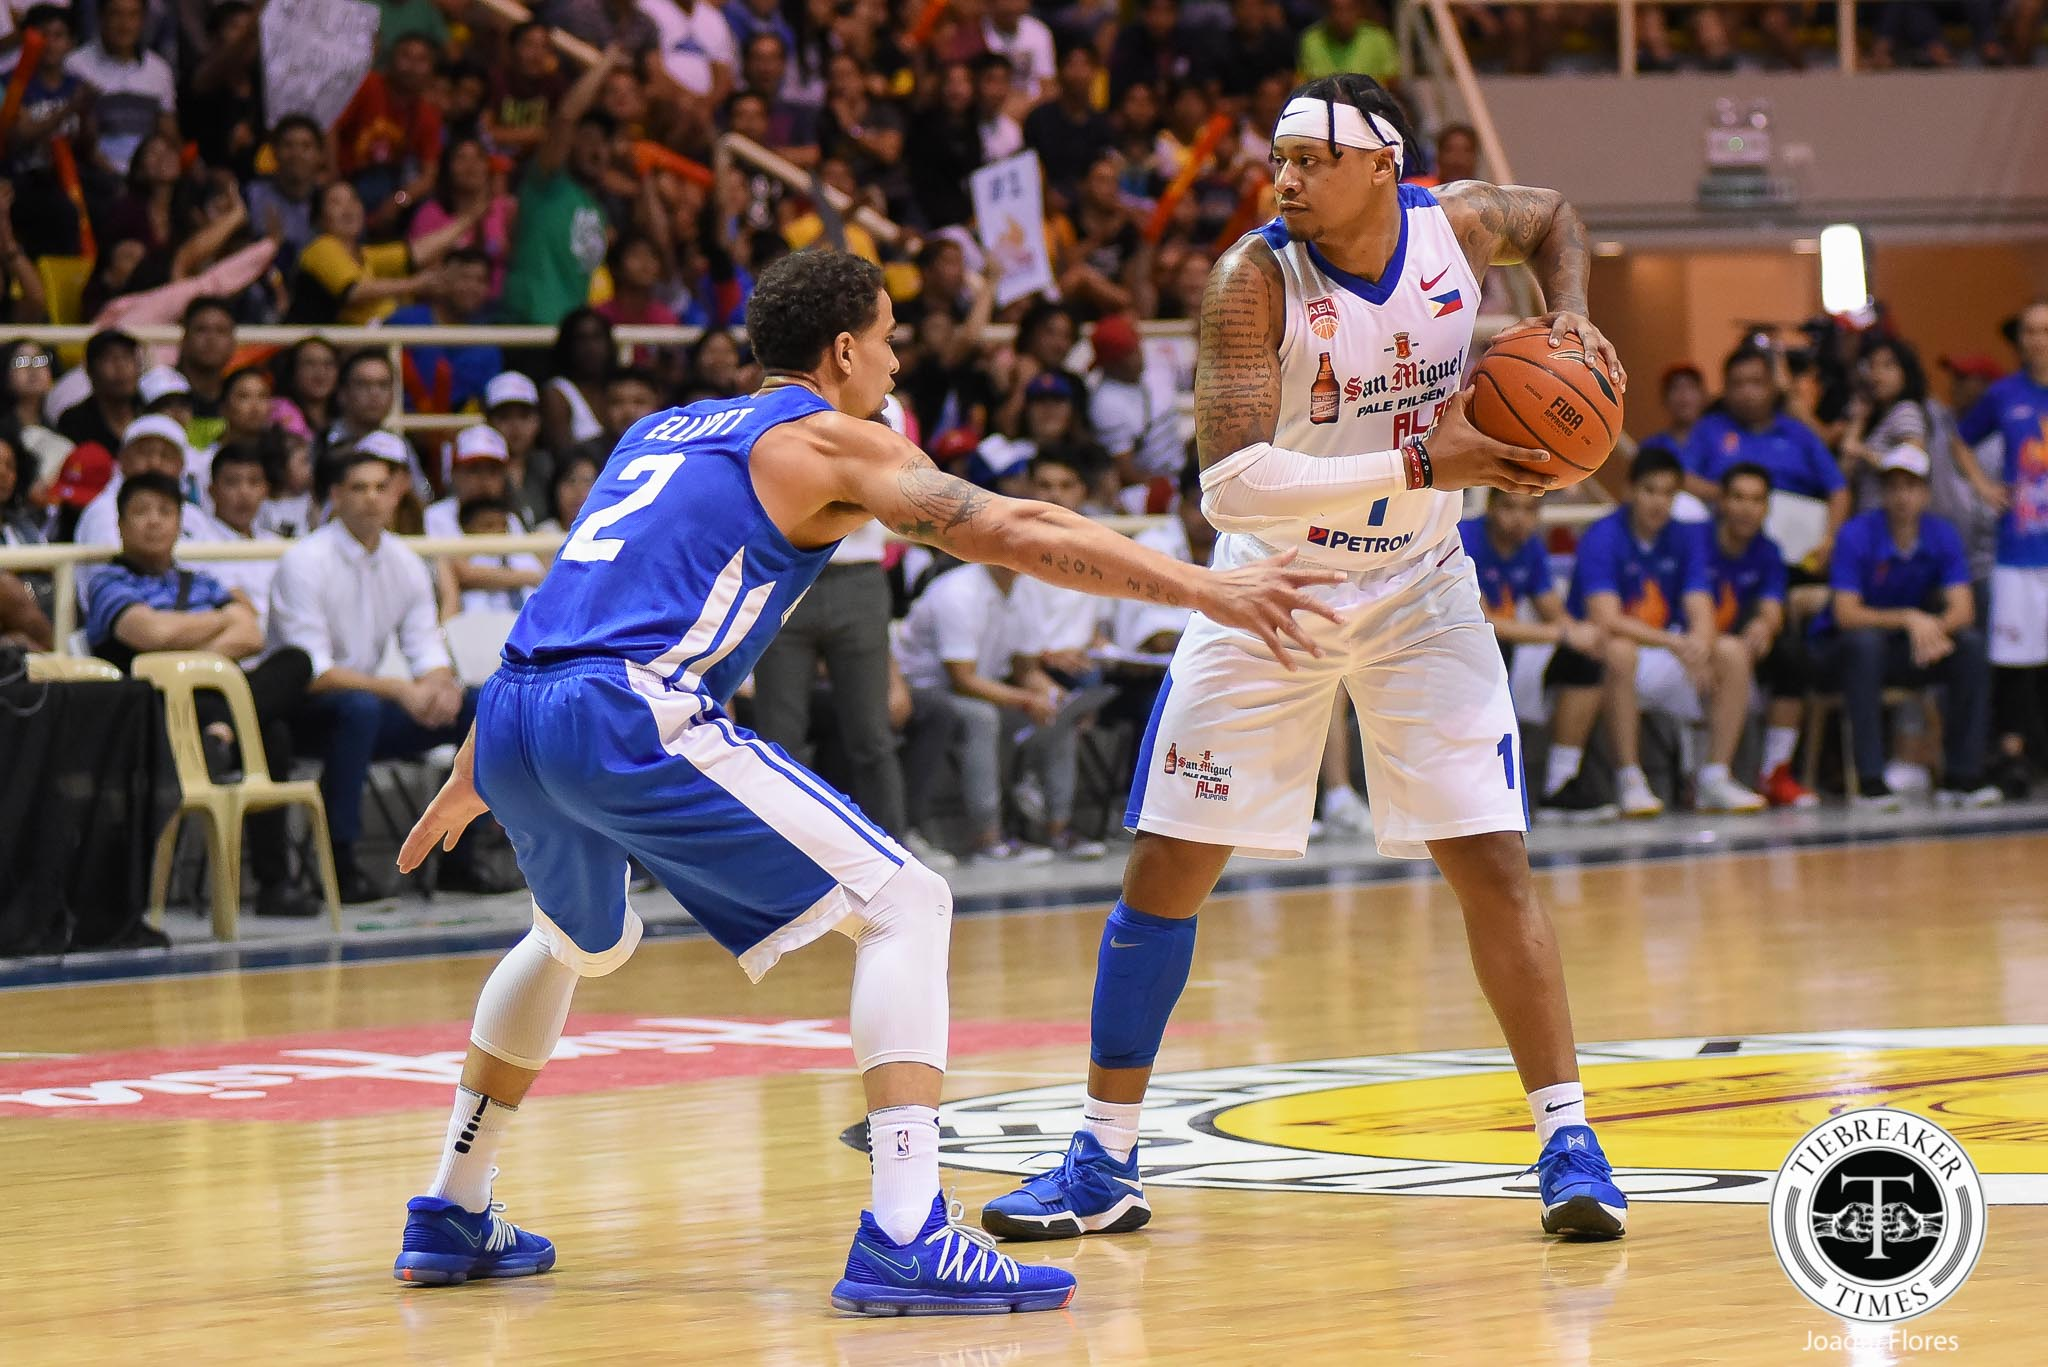 Tiebreaker Times Ray Parks Jr. plans to settle father's unfinished business in ABL ABL Alab Pilipinas Basketball News  Bobby Ray Parks Jr. 2017-18 ABL Season